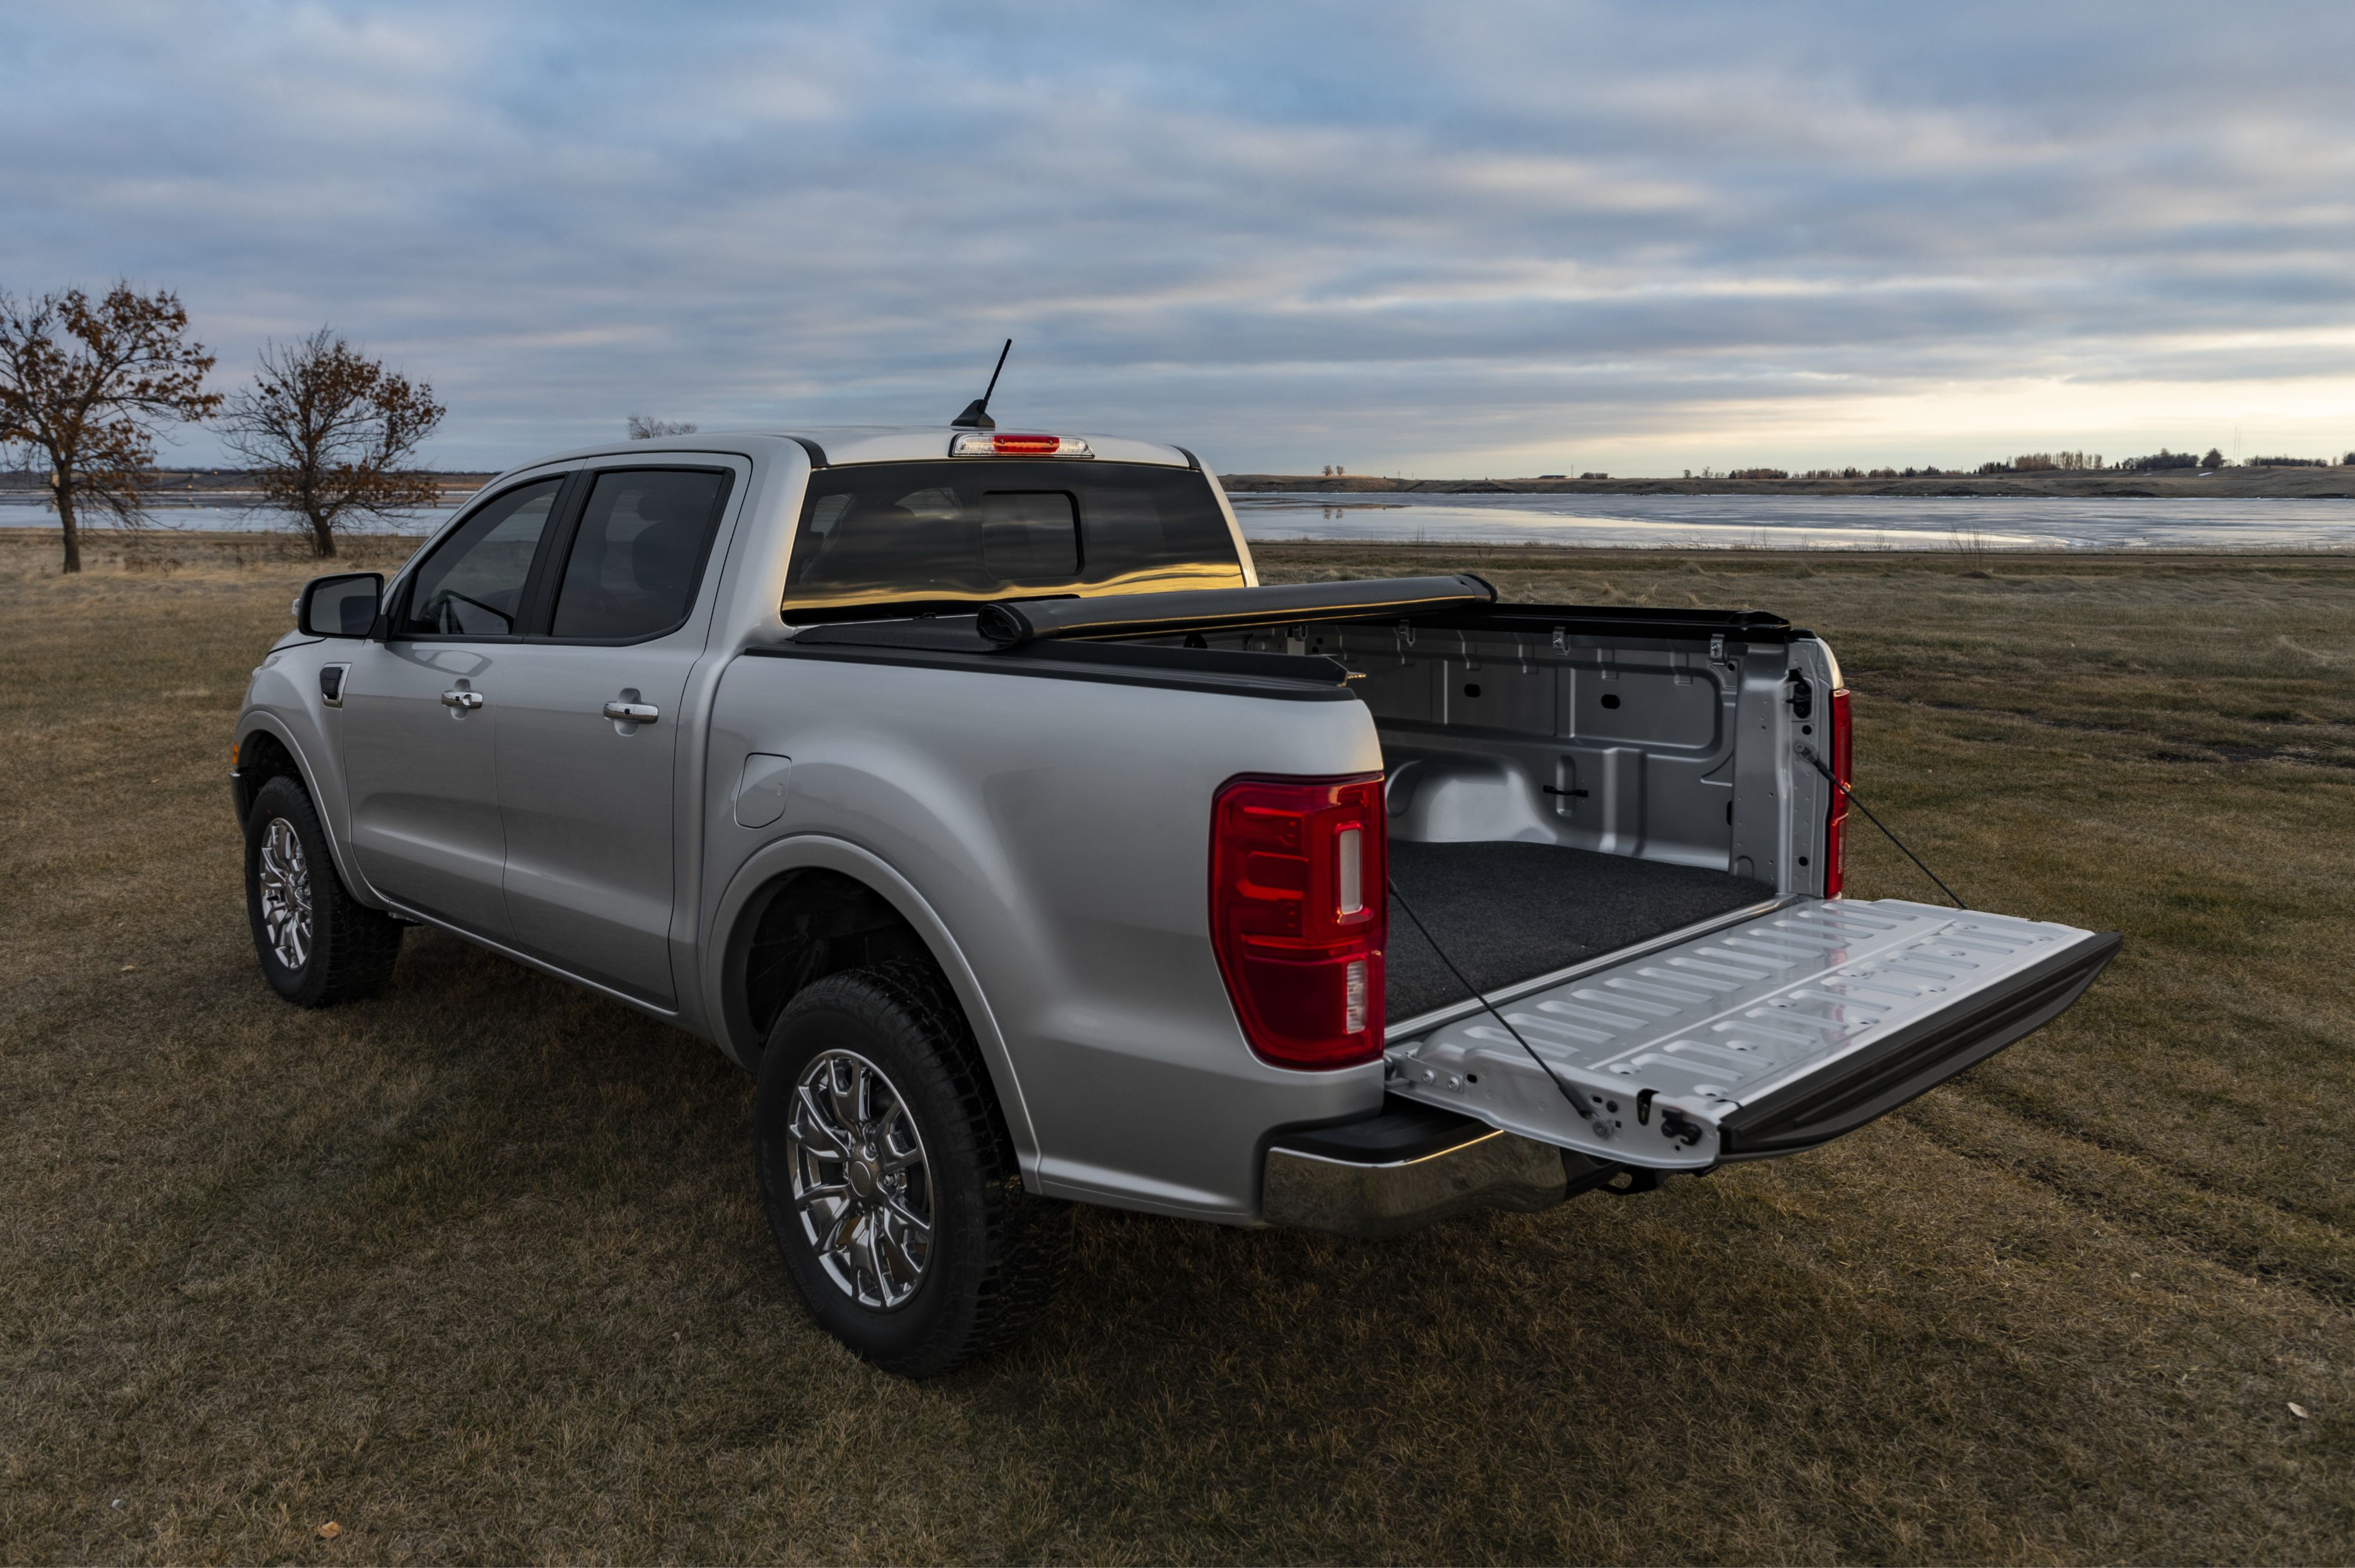 Best Tonneau Cover for Ram 1500 Review Guide For 2021